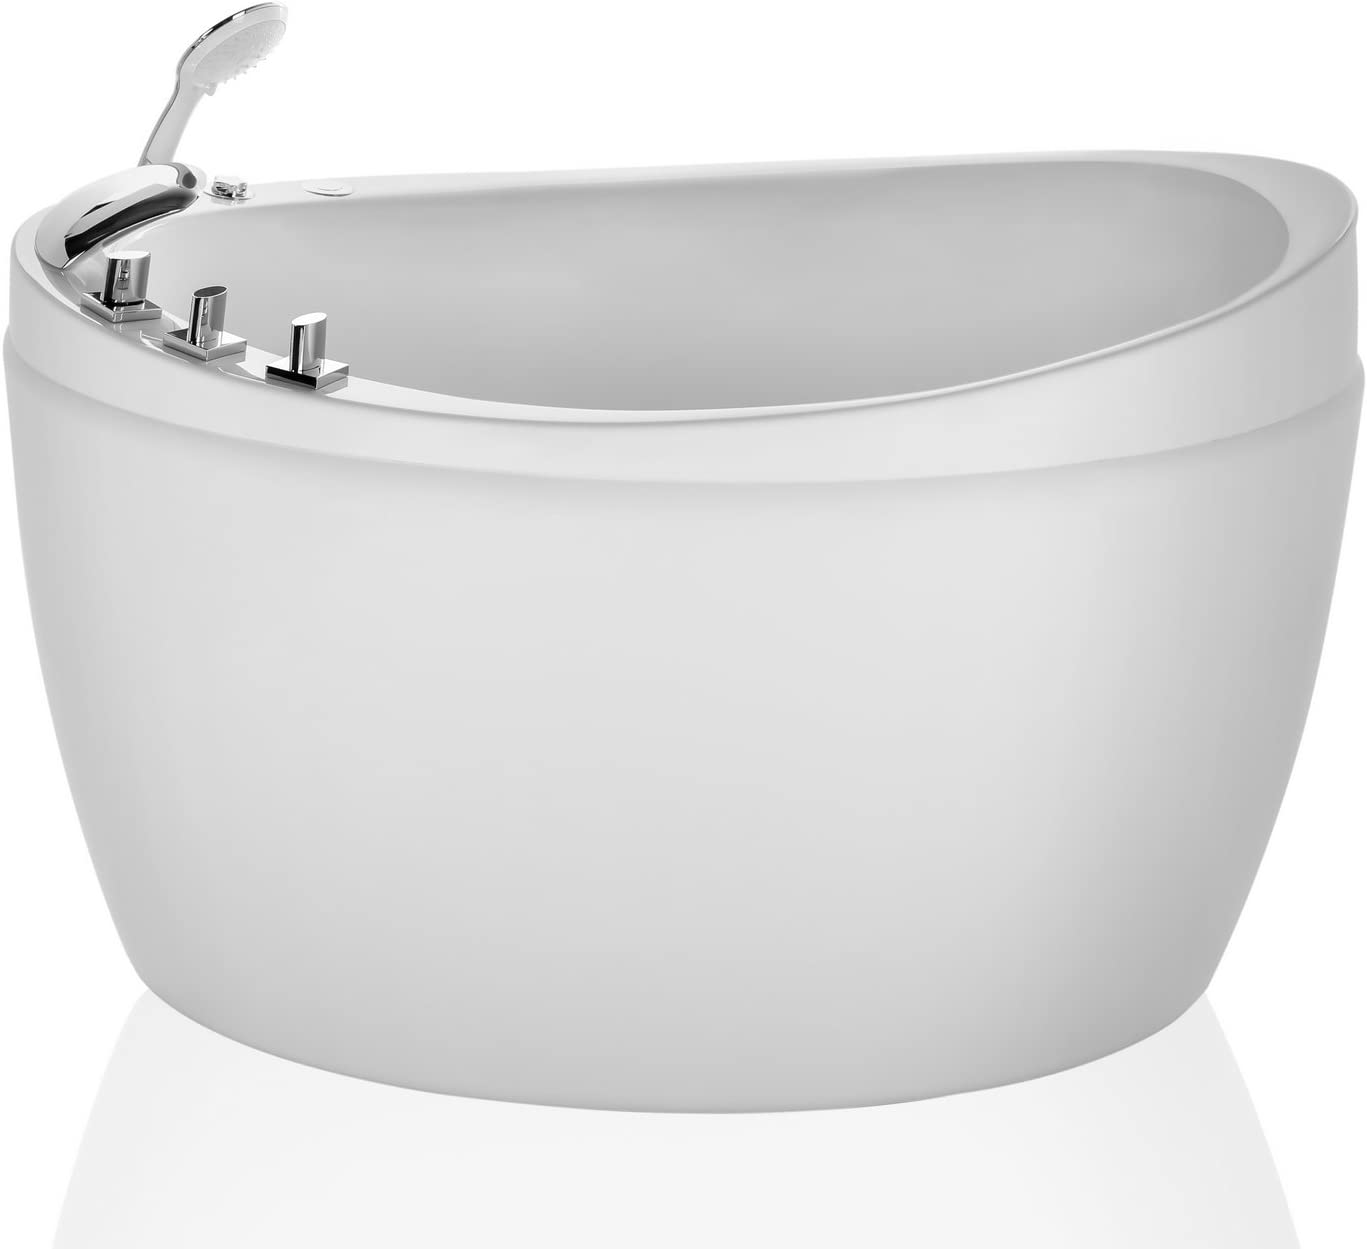 Empava 48 in. Freestanding Air Mirco Bubble Hydrotherapy Oval Japanese SPA Tub Bathtub, White